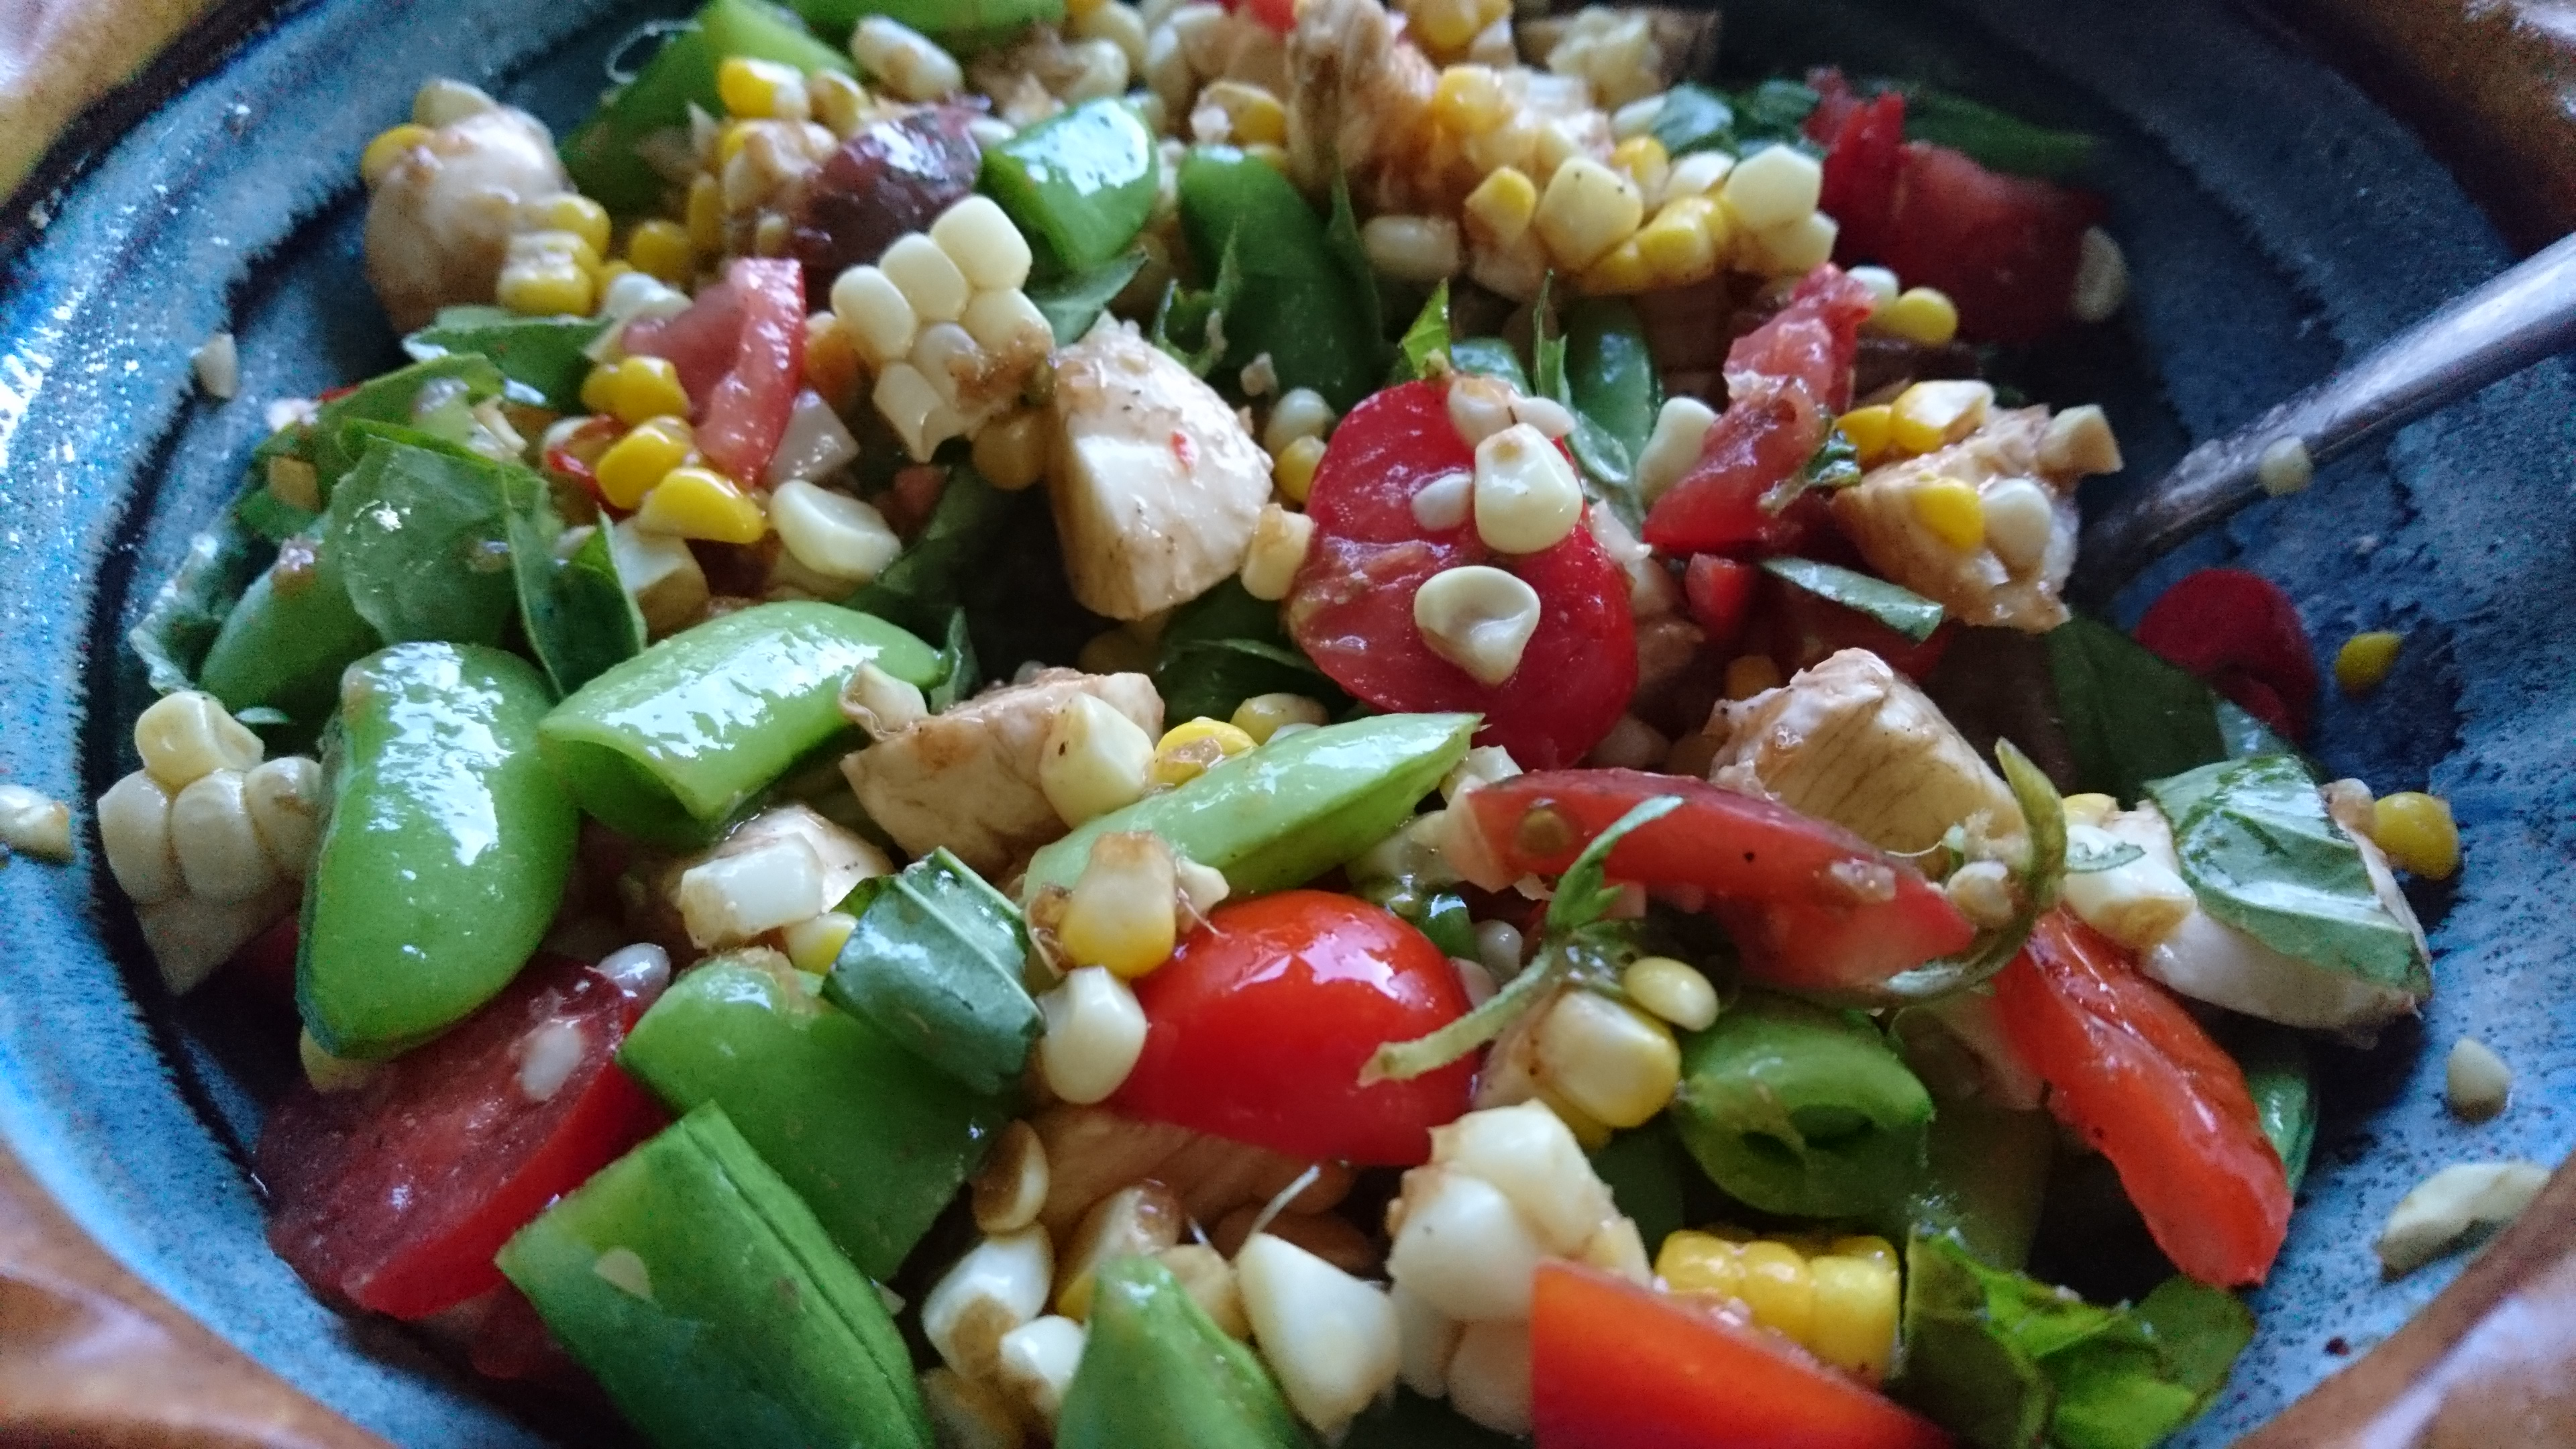 snap pea, tomato, and corn salad in a ceramic bowl